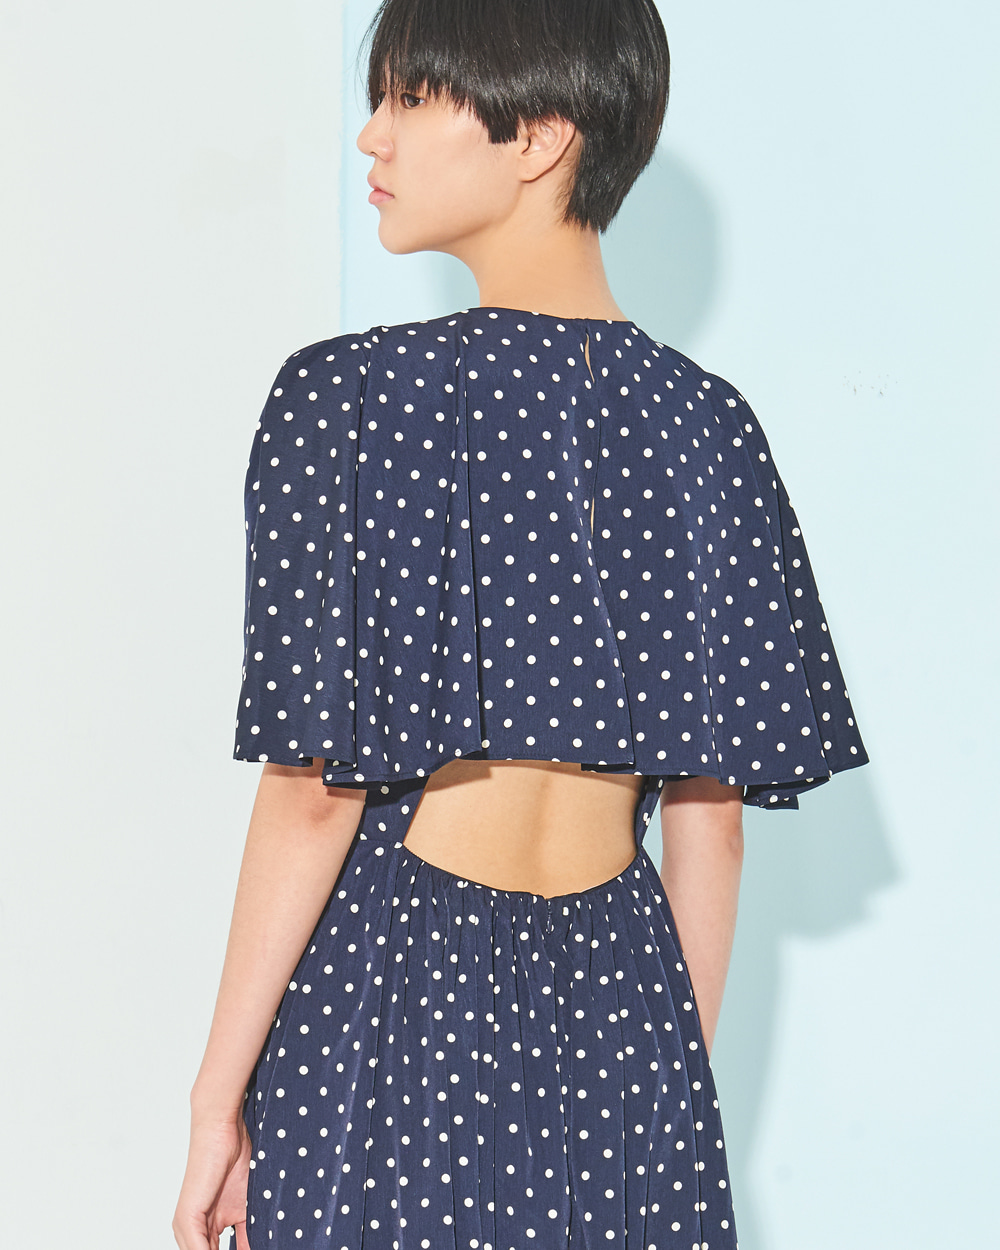 DOT POLKA DRESS